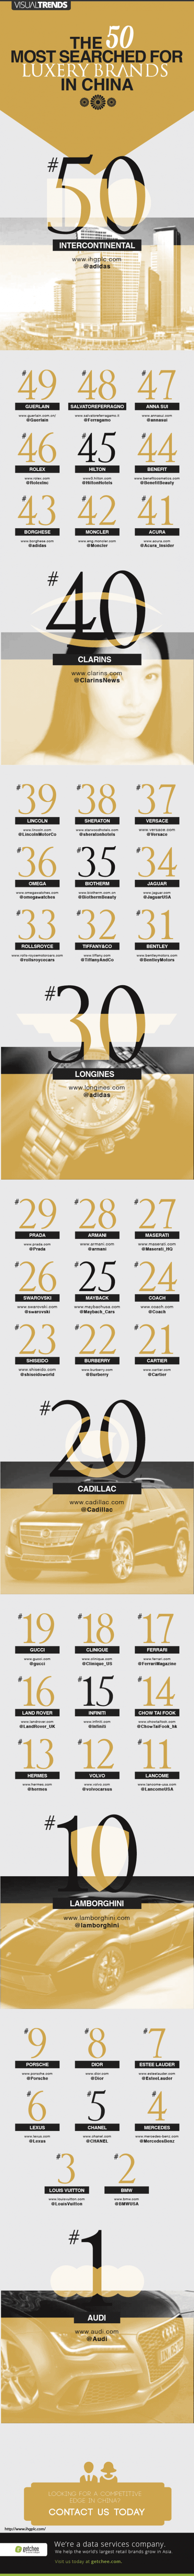 The 50 most searched for luxury brands in China